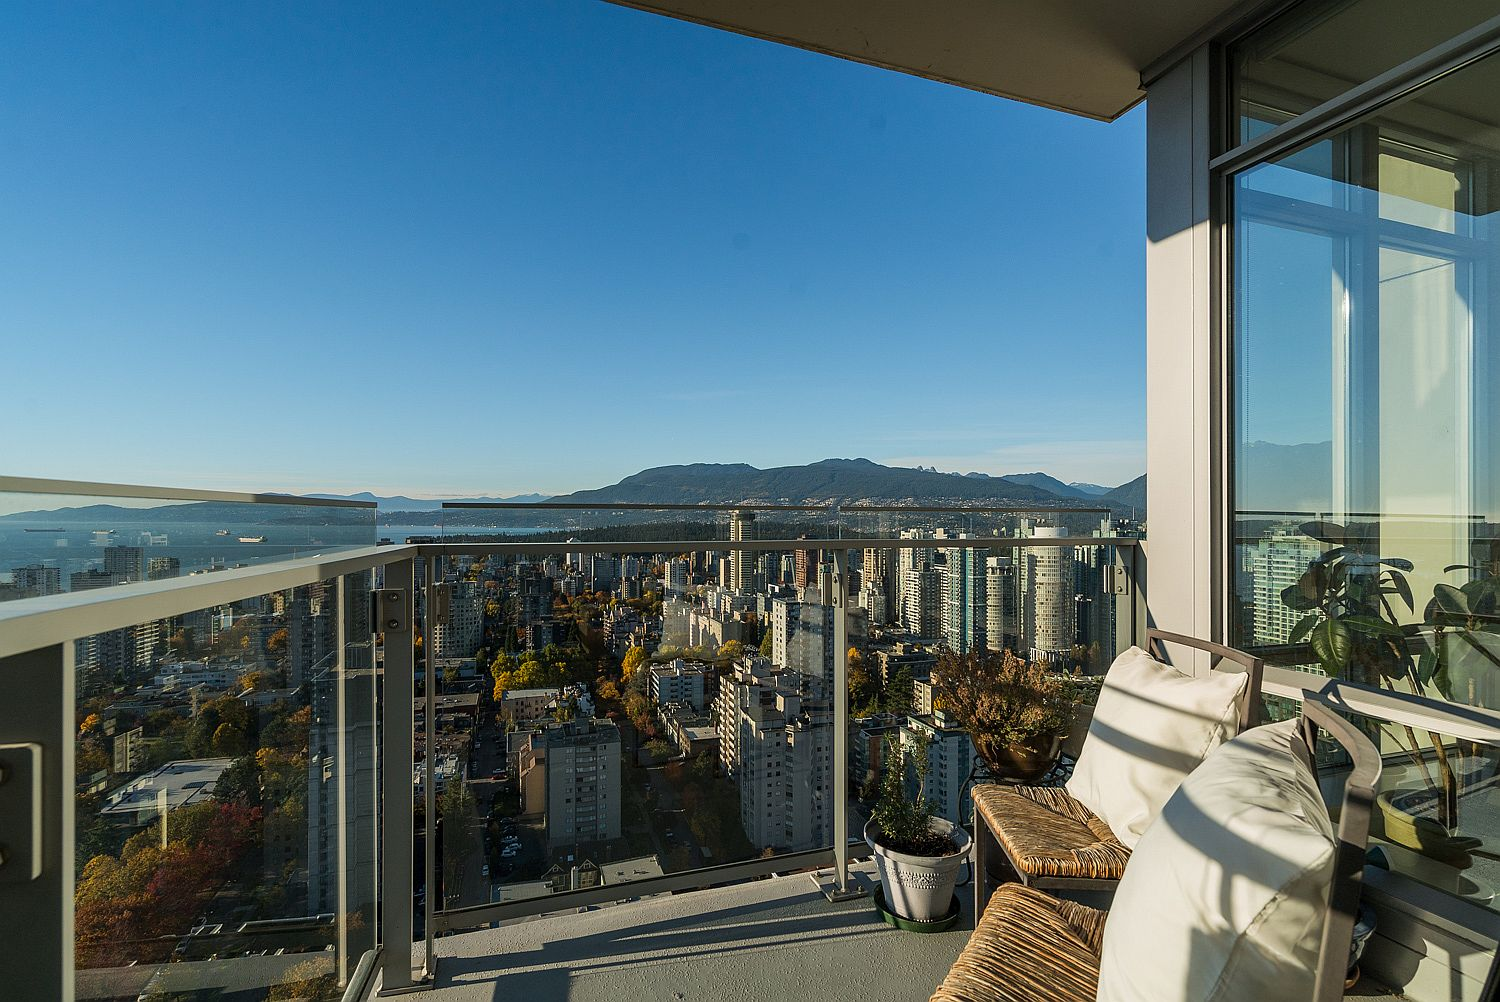 Small-balcony-of-the-36th-floor-luxury-condo-with-memserizing-view-of-the-Bay-Area